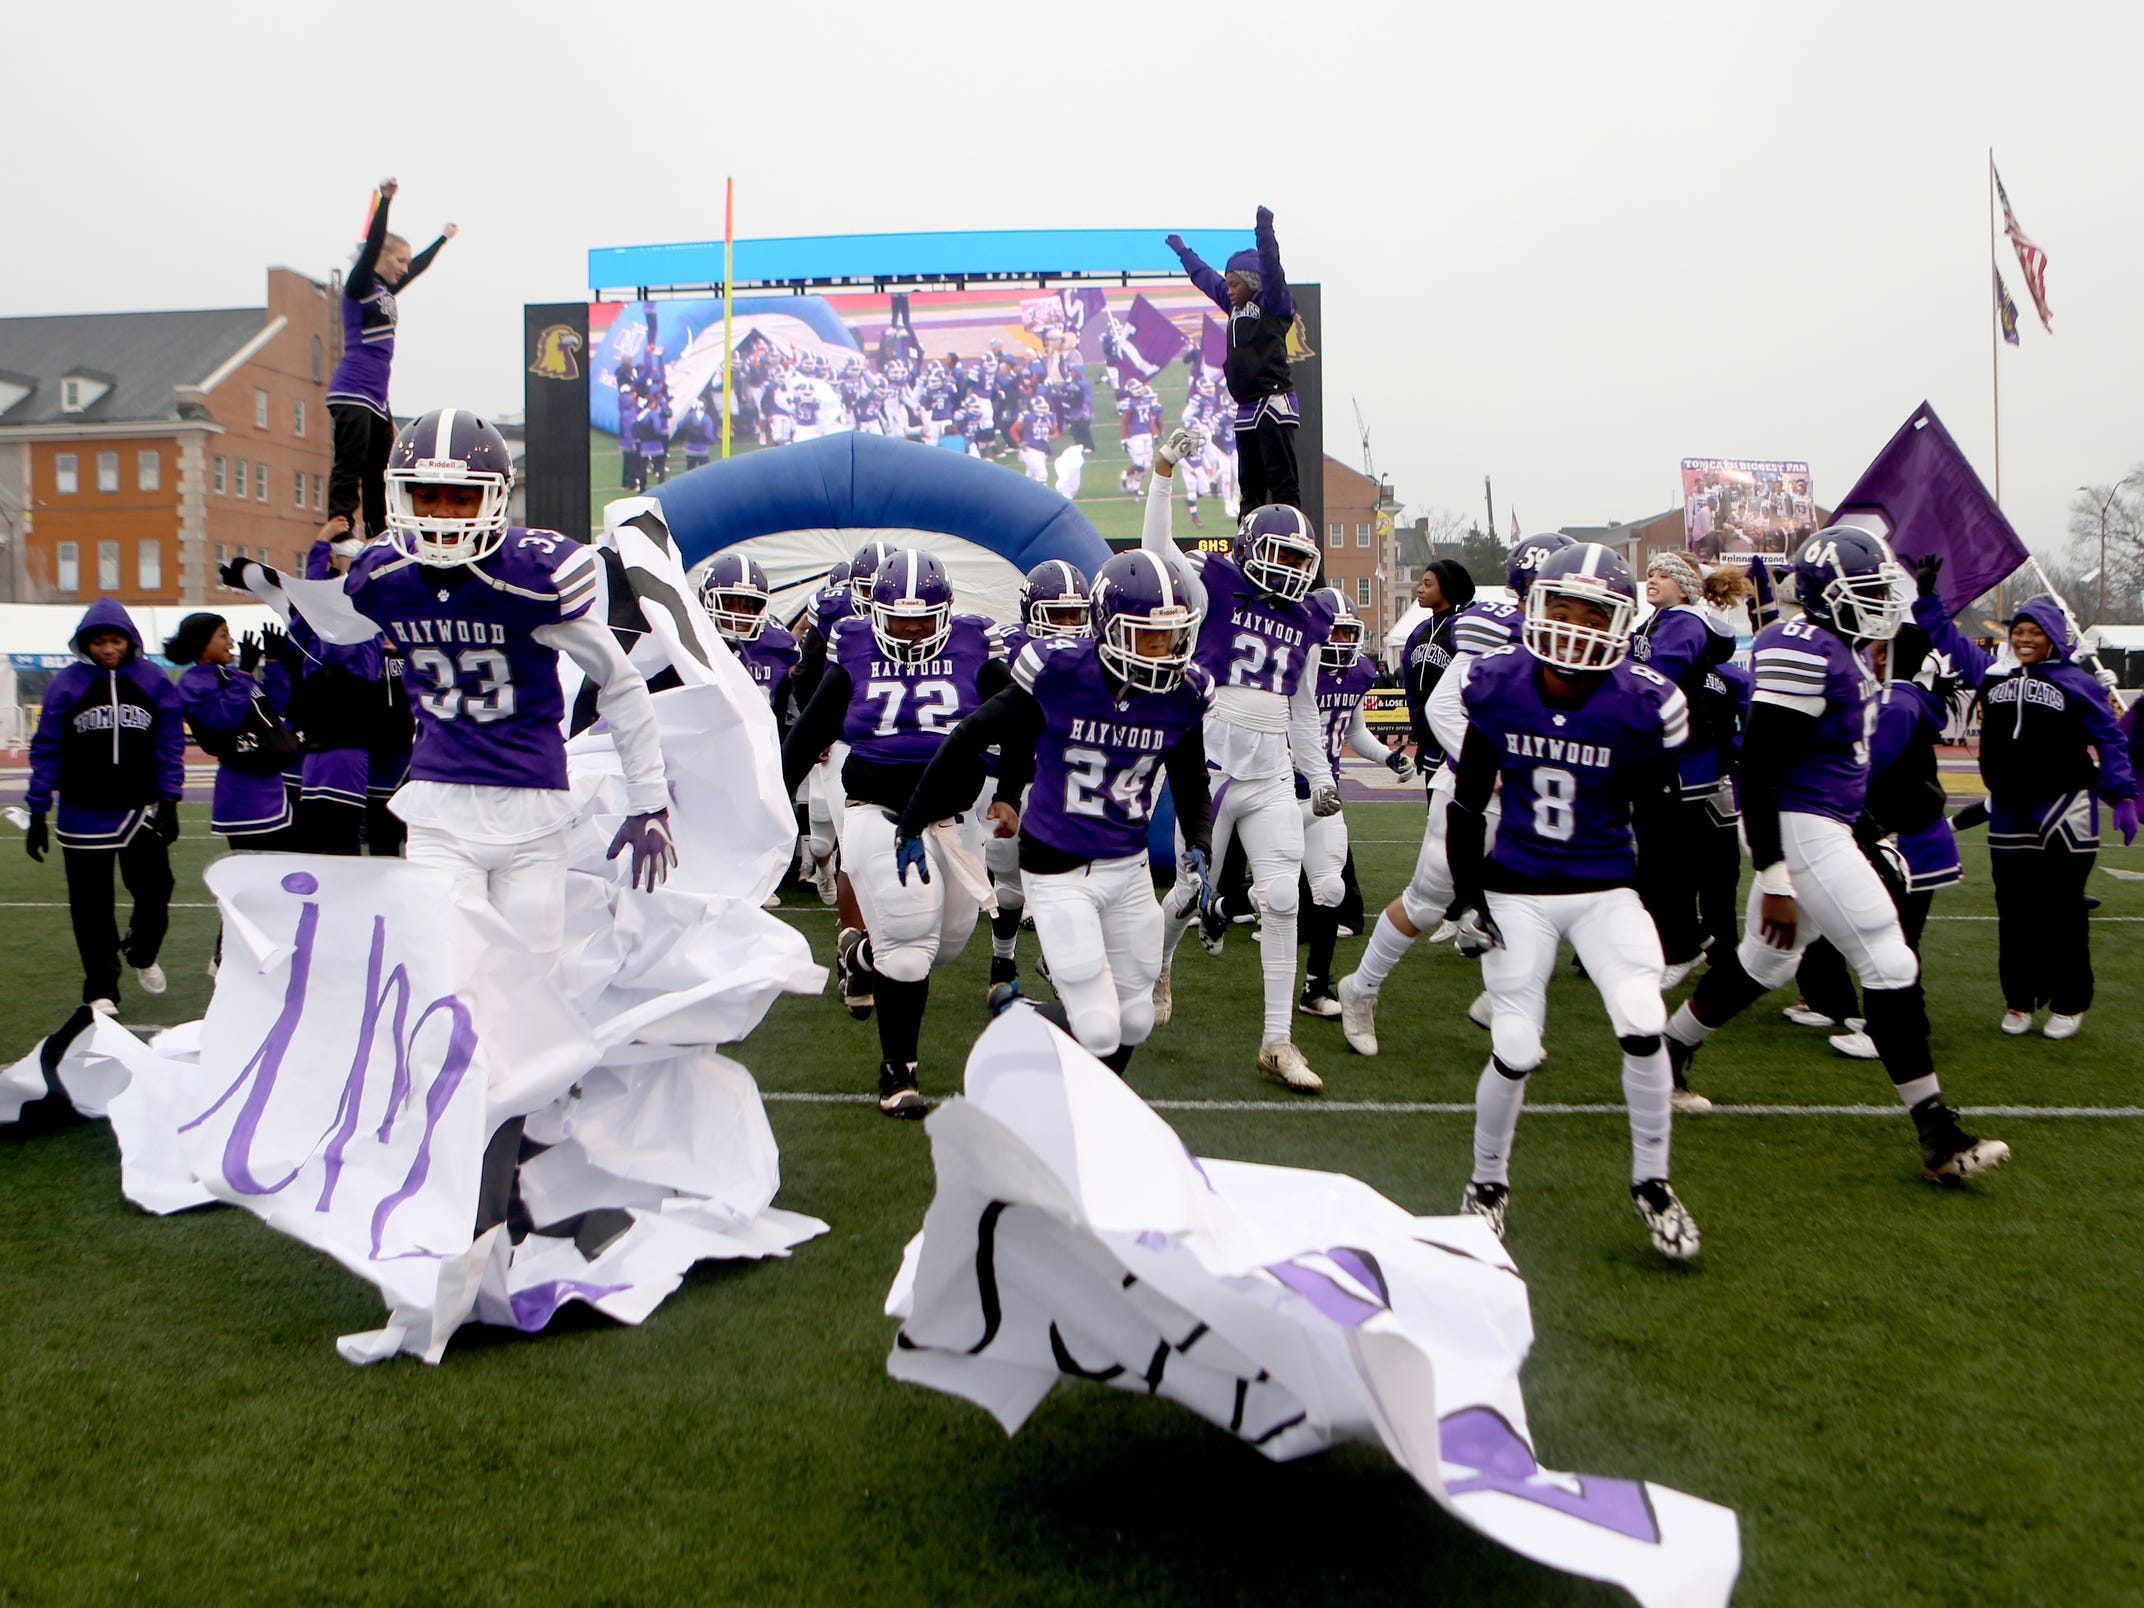 Haywood players enter the field before the Class 4A BlueCross Bowl state championship Thursday, Nov. 29, 2018, at Tennessee Tech's Tucker Stadium in Cookeville, Tenn. against Greeneville.